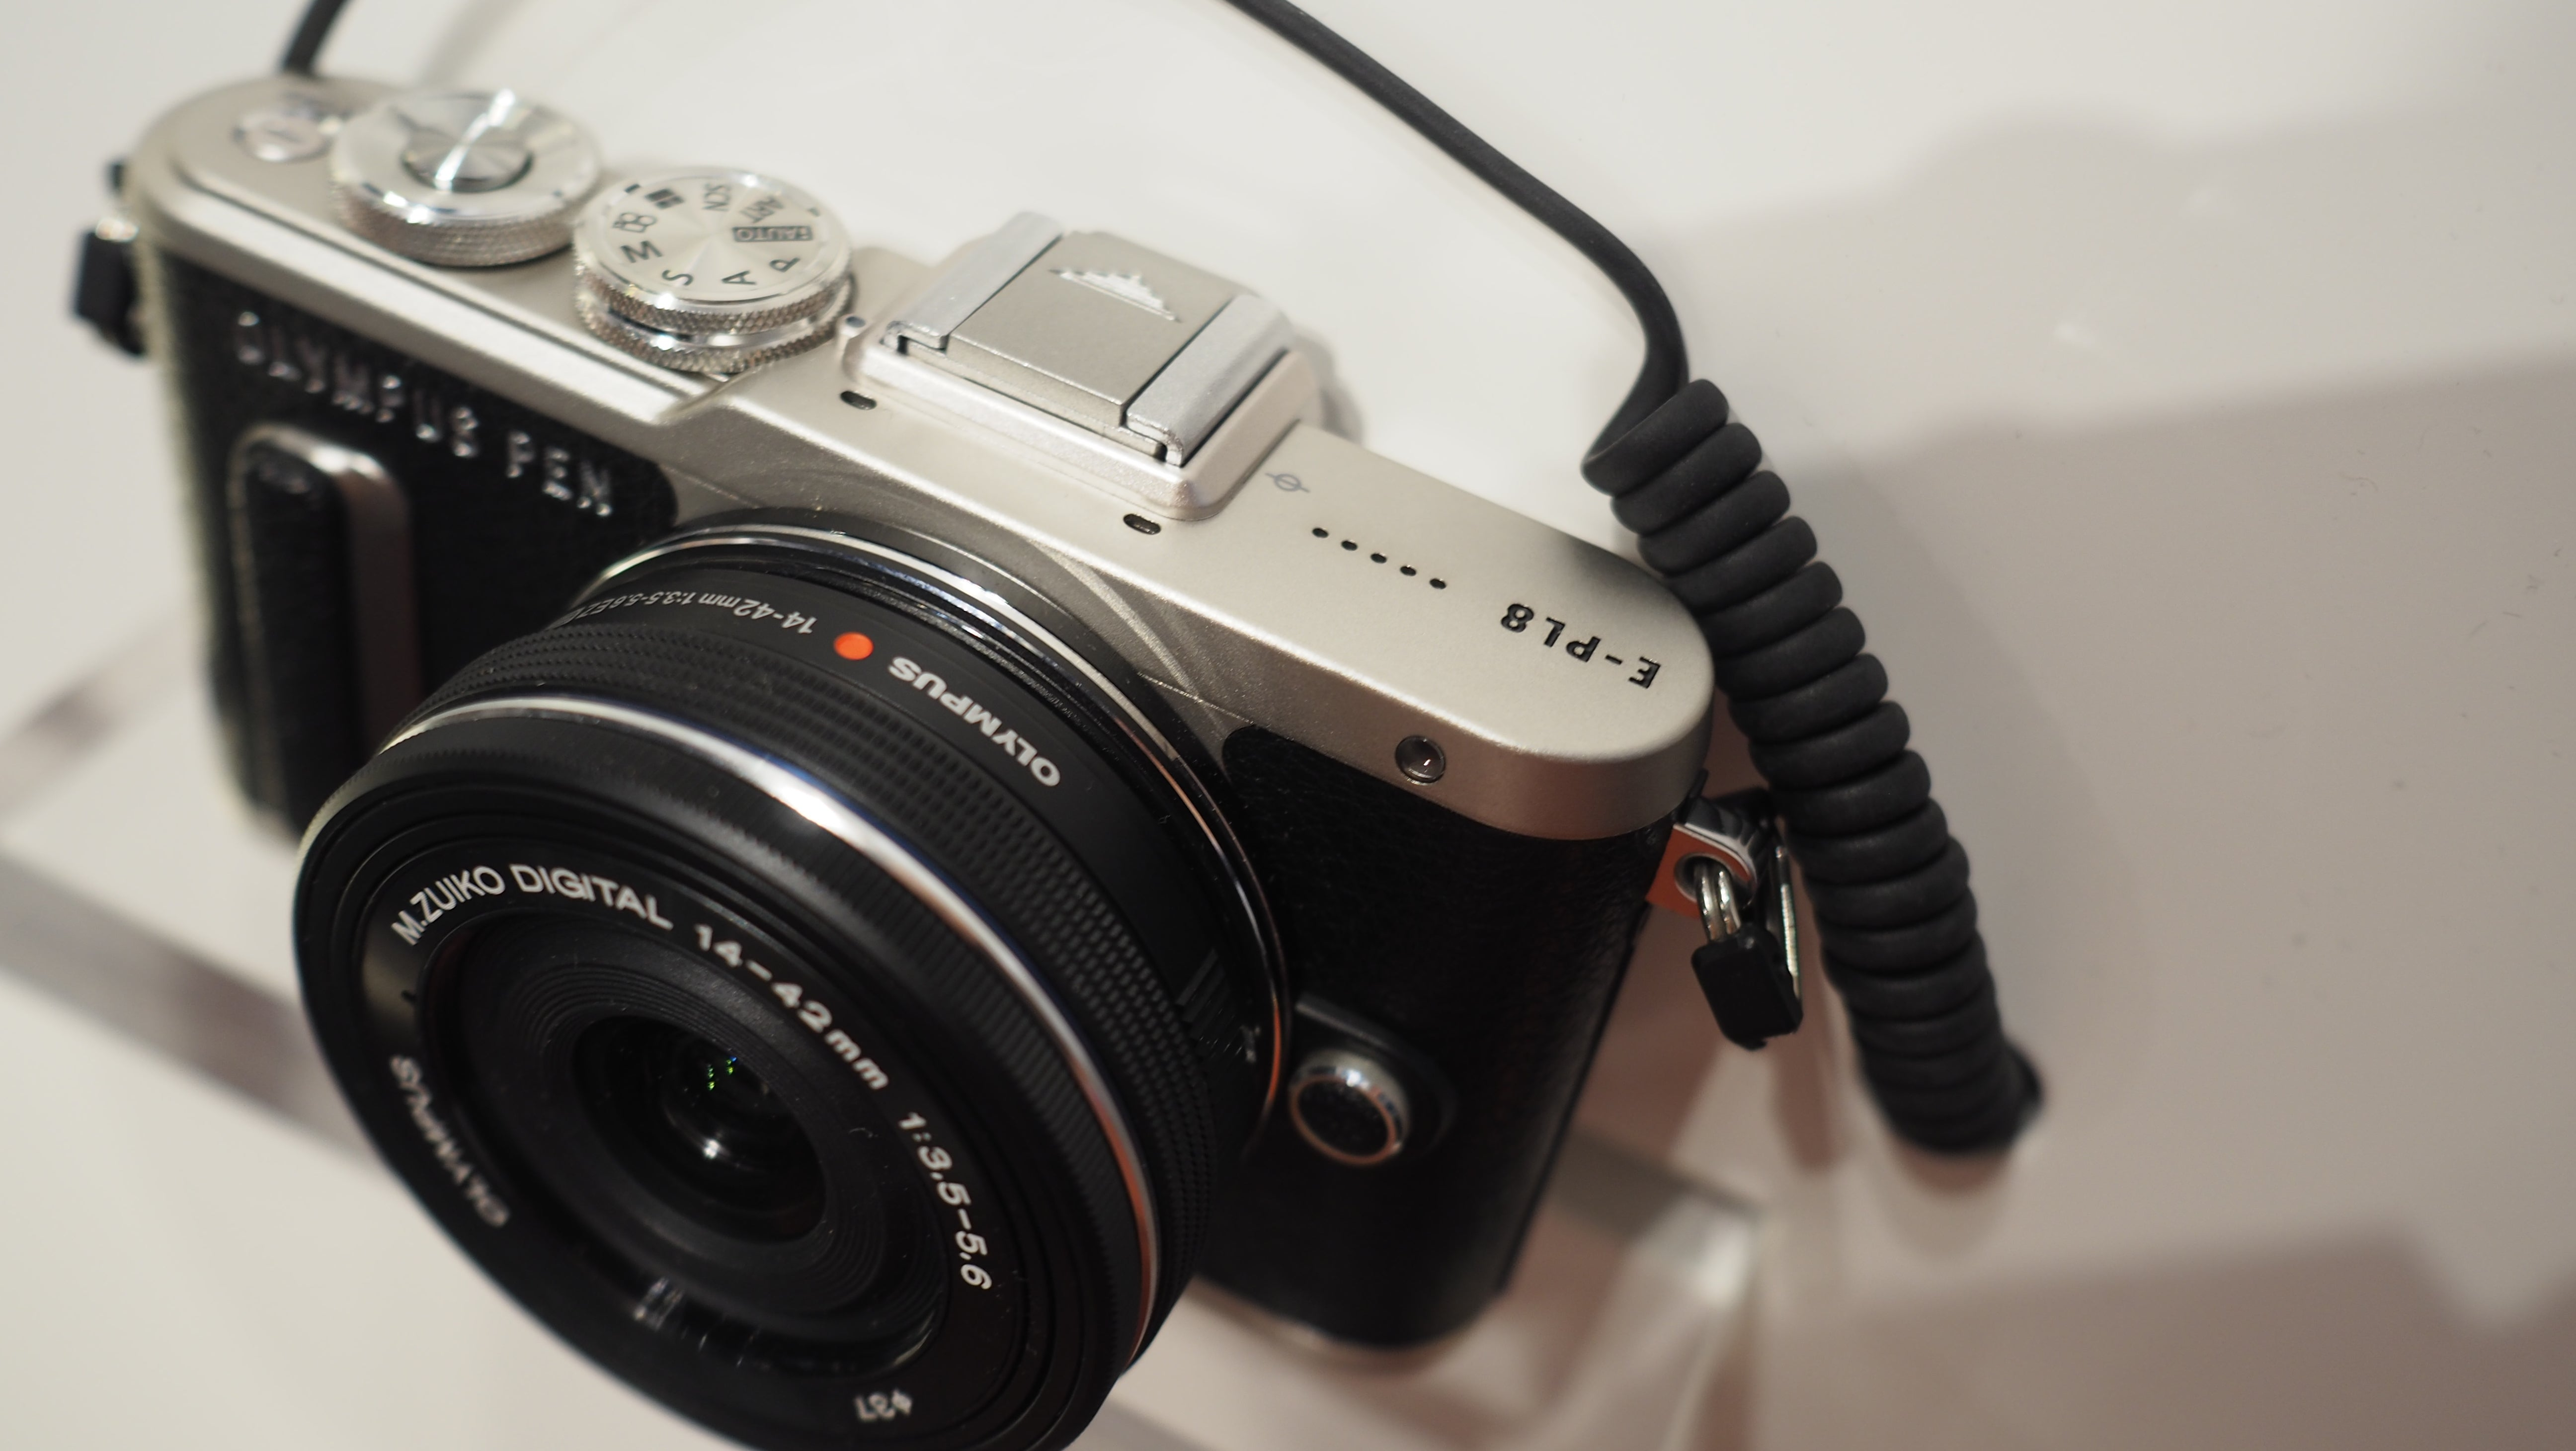 Olympus Pen E Pl8 Review Trusted Reviews